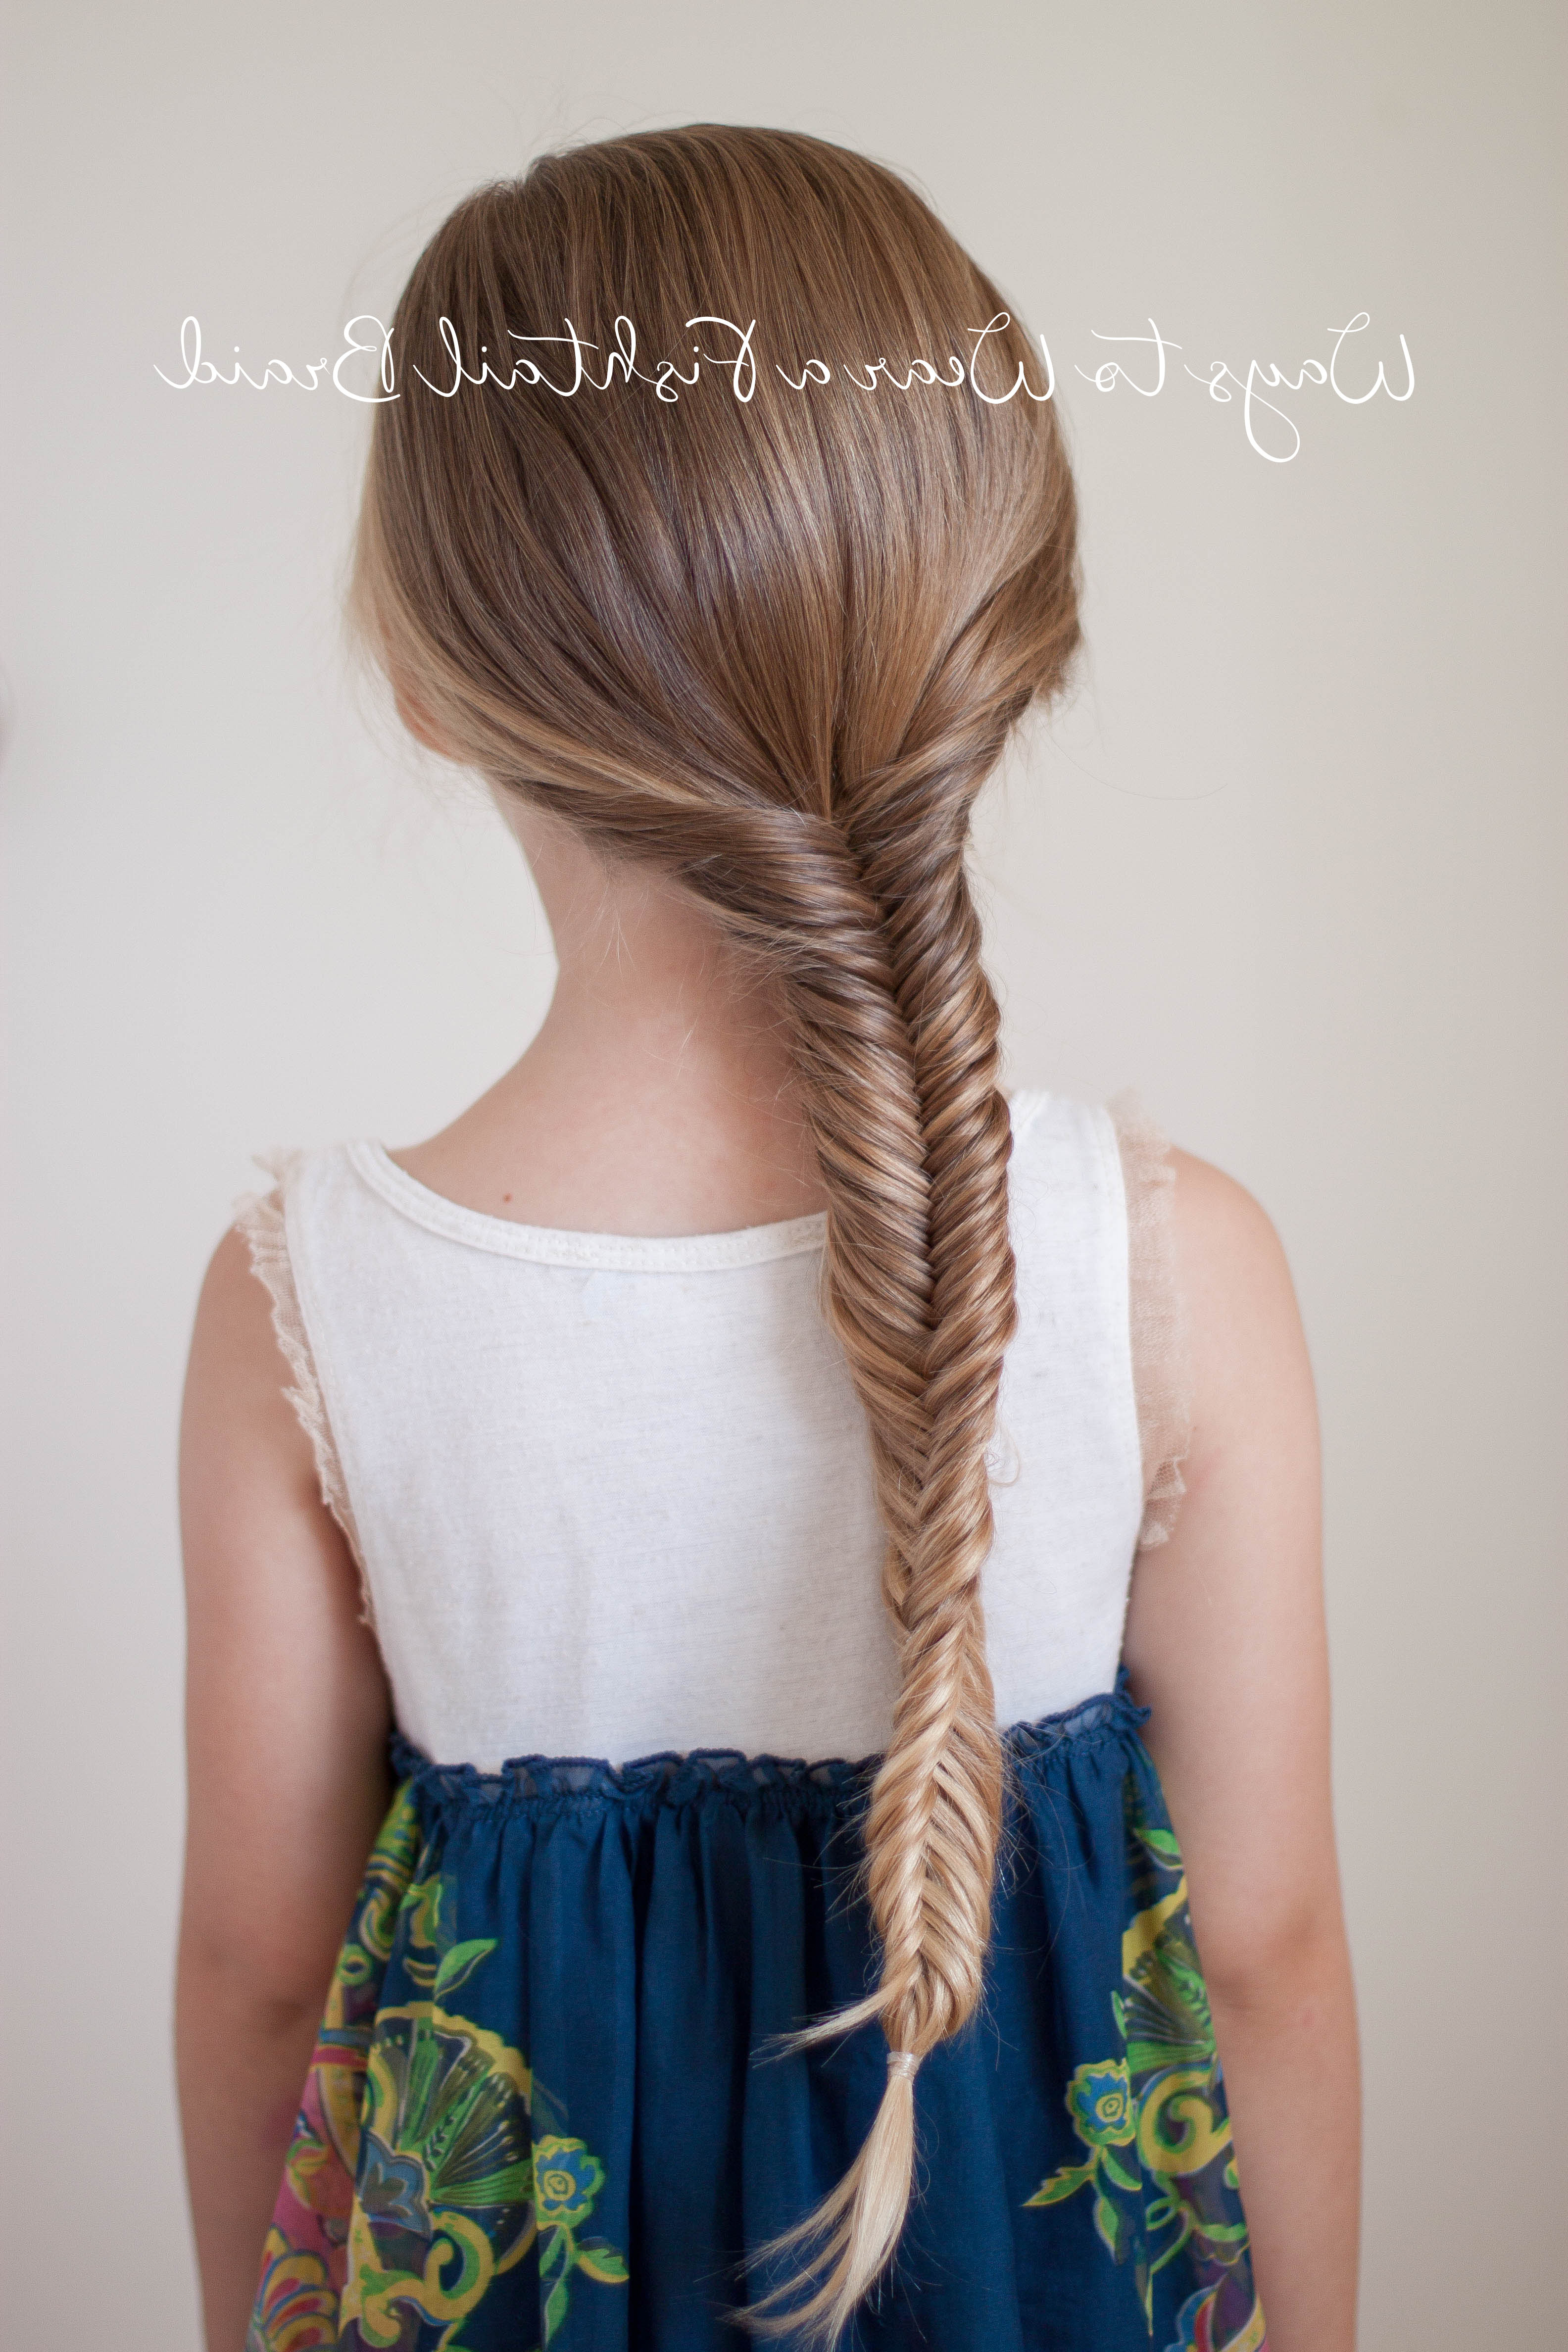 Ways To Wear A Fishtail Braid (View 4 of 20)